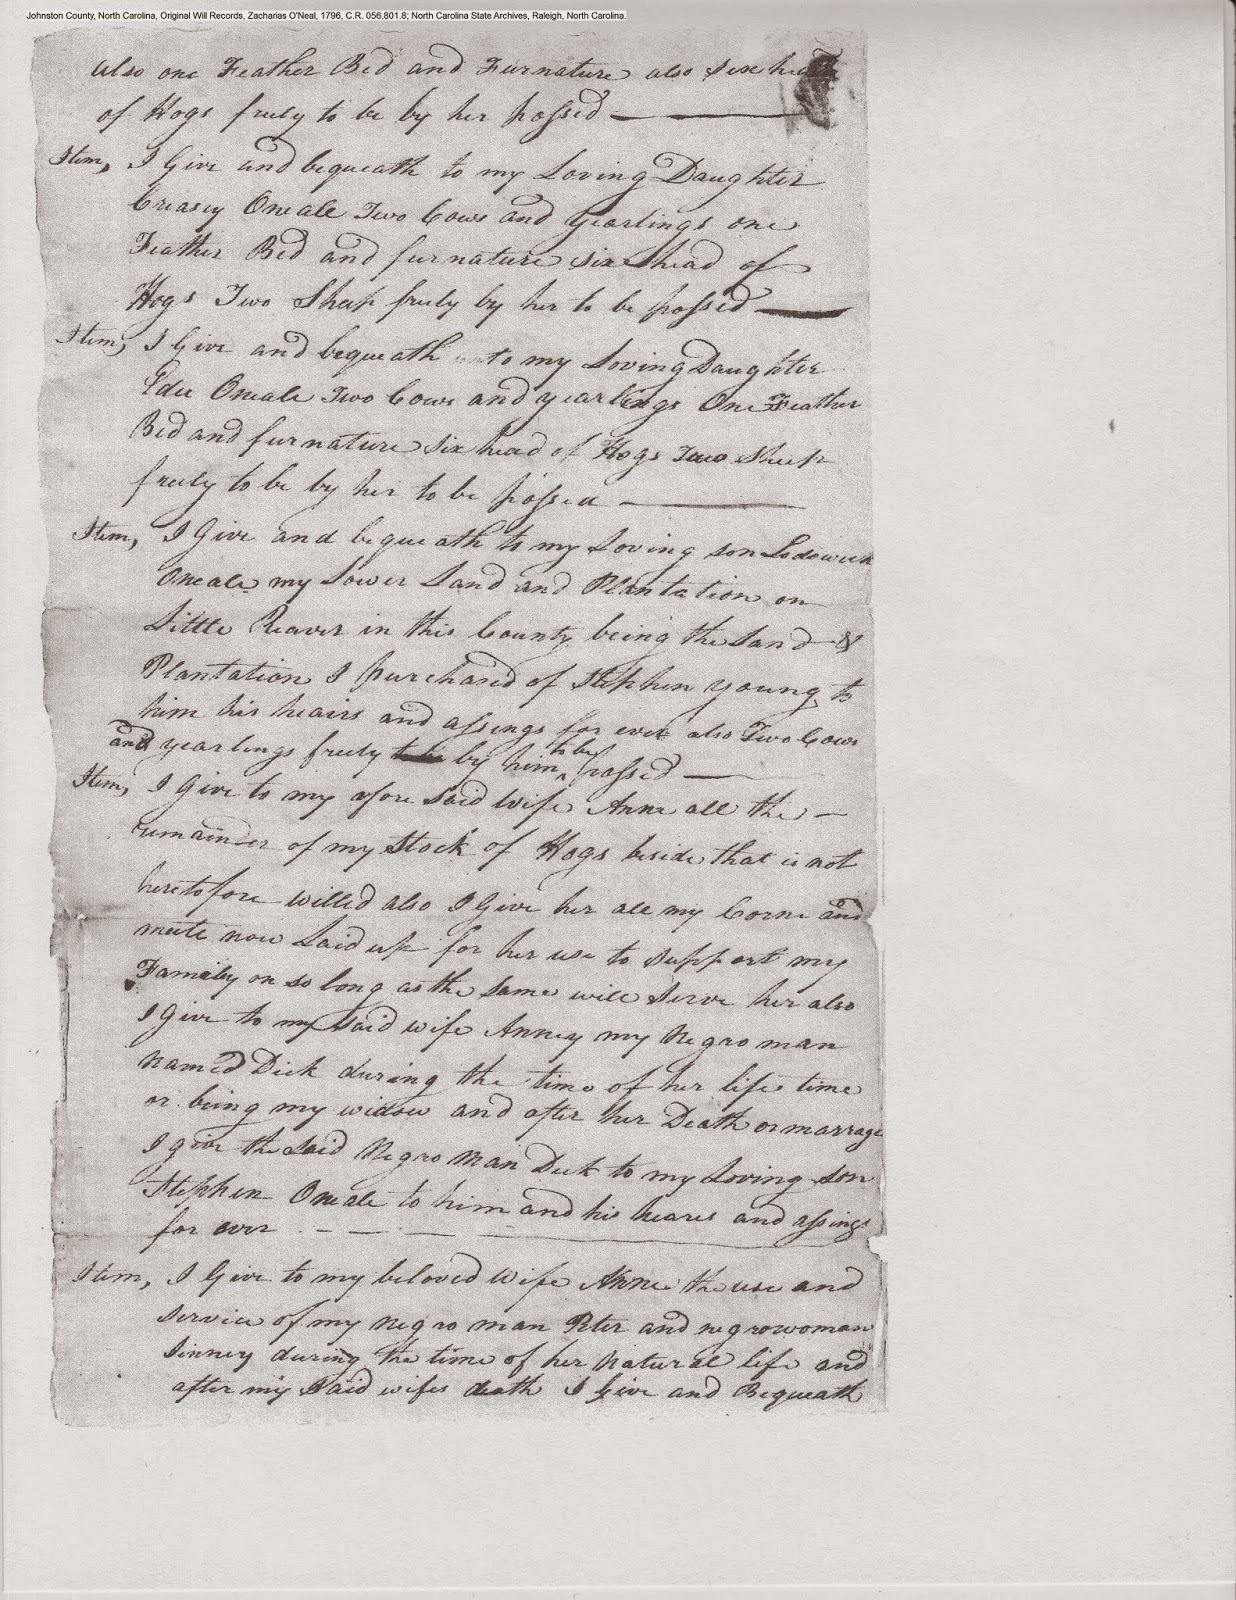 Zachariah O'Neal's will, Johnston Co., NC, 1796, p. 2